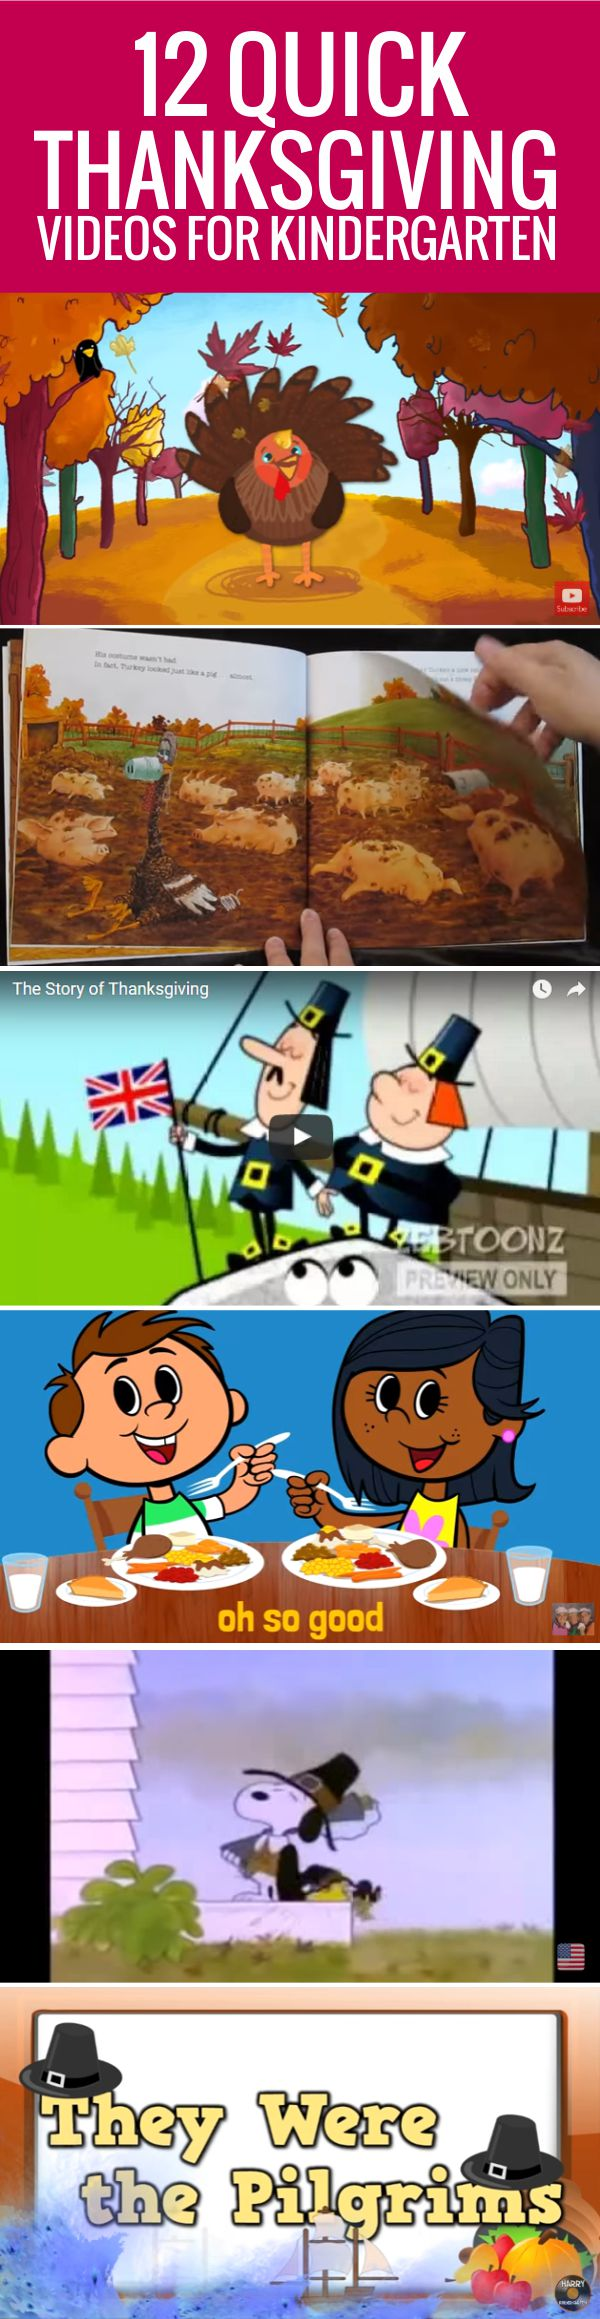 Quick Thanksgiving Videos for Kindergarten